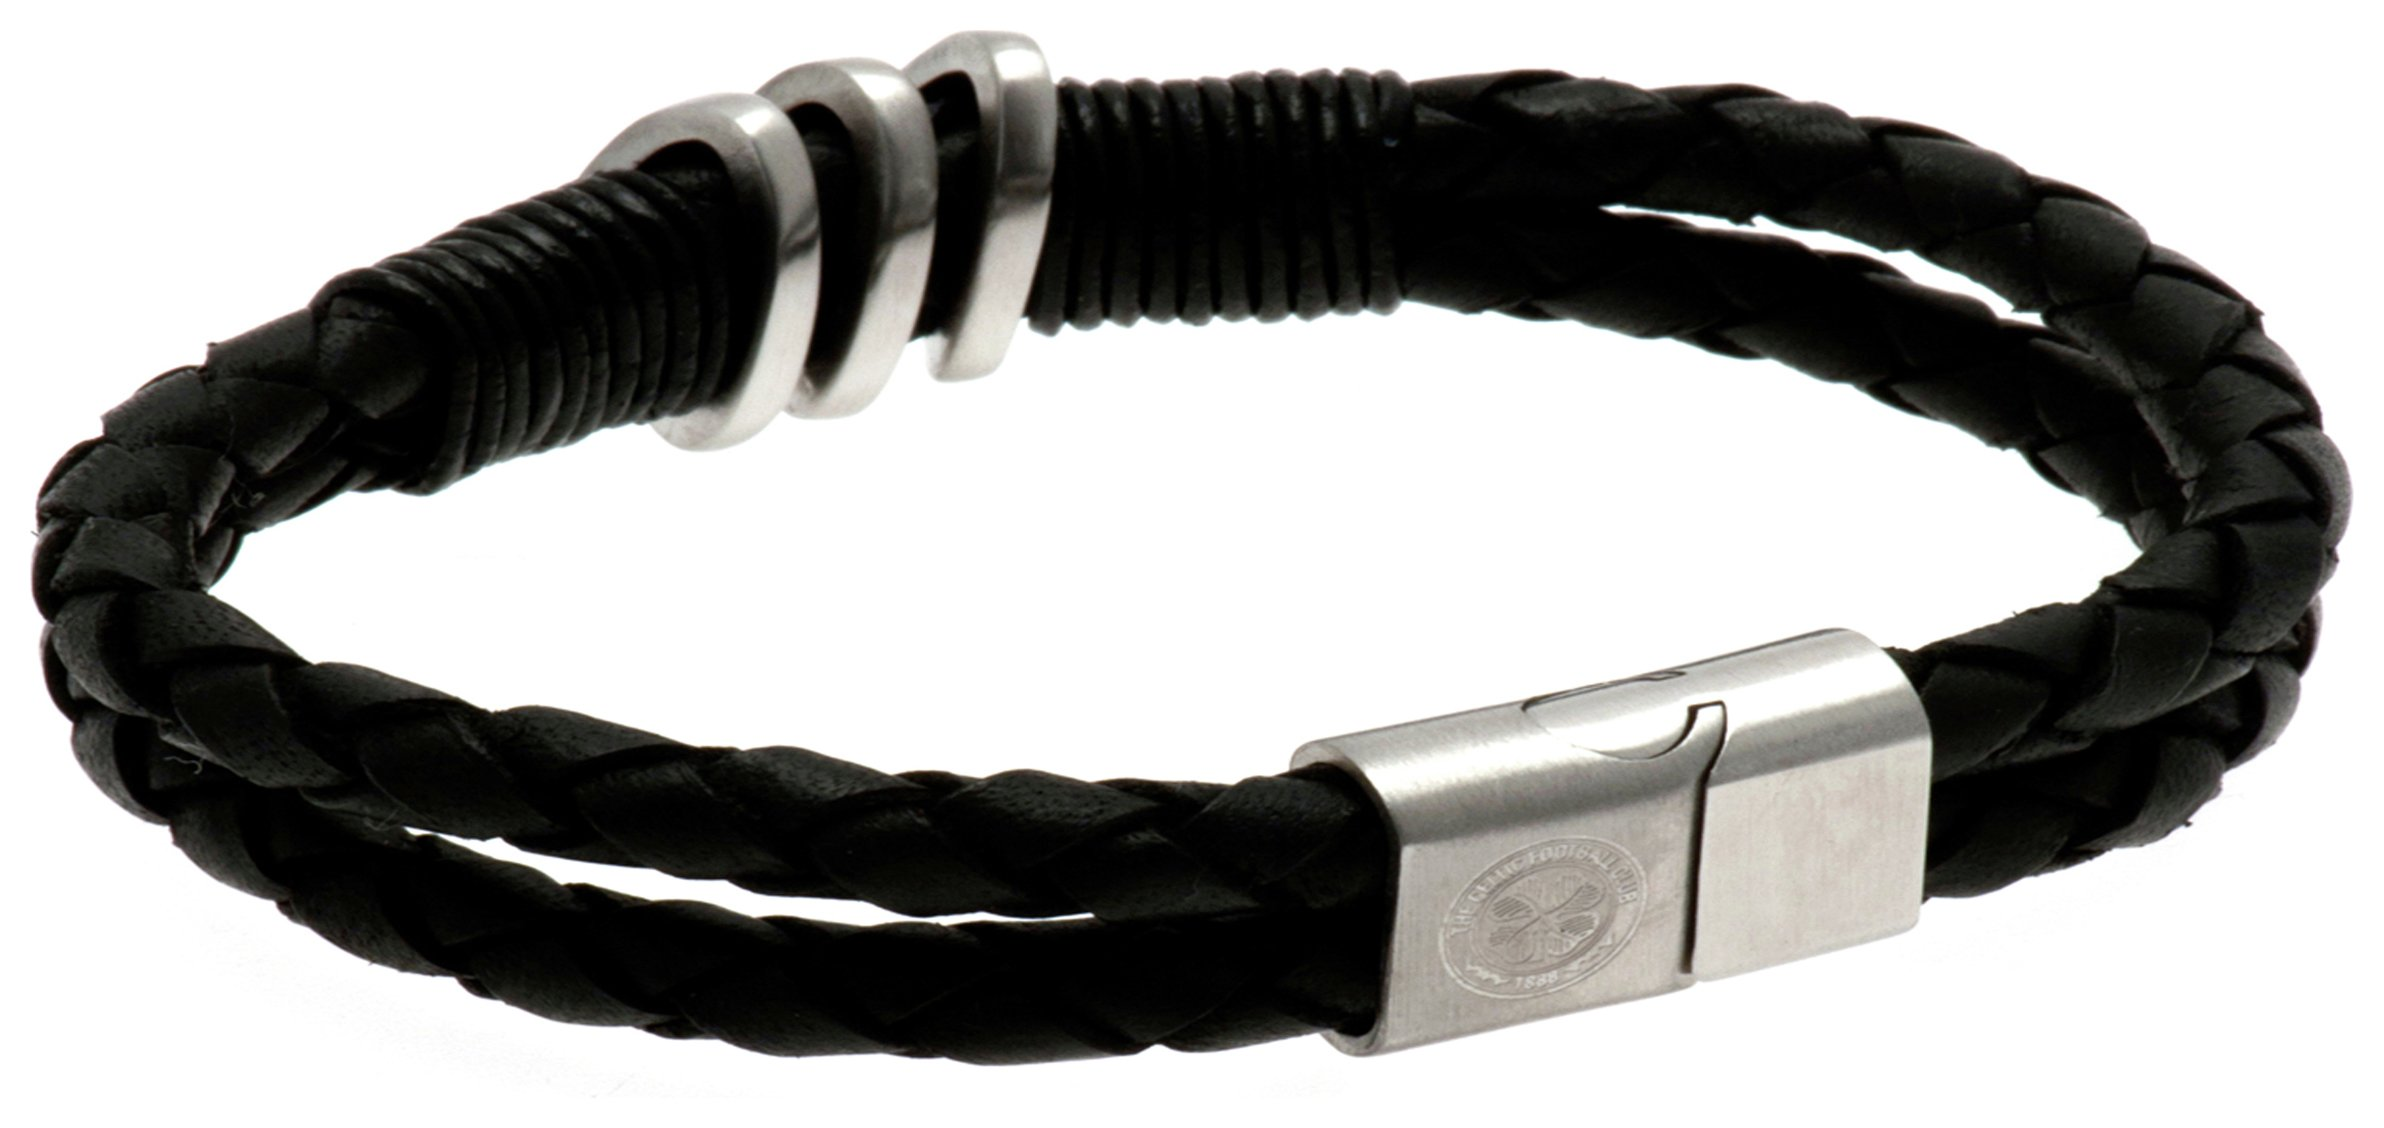 Image of Stainless Steel and Leather Celtic Bracelet.